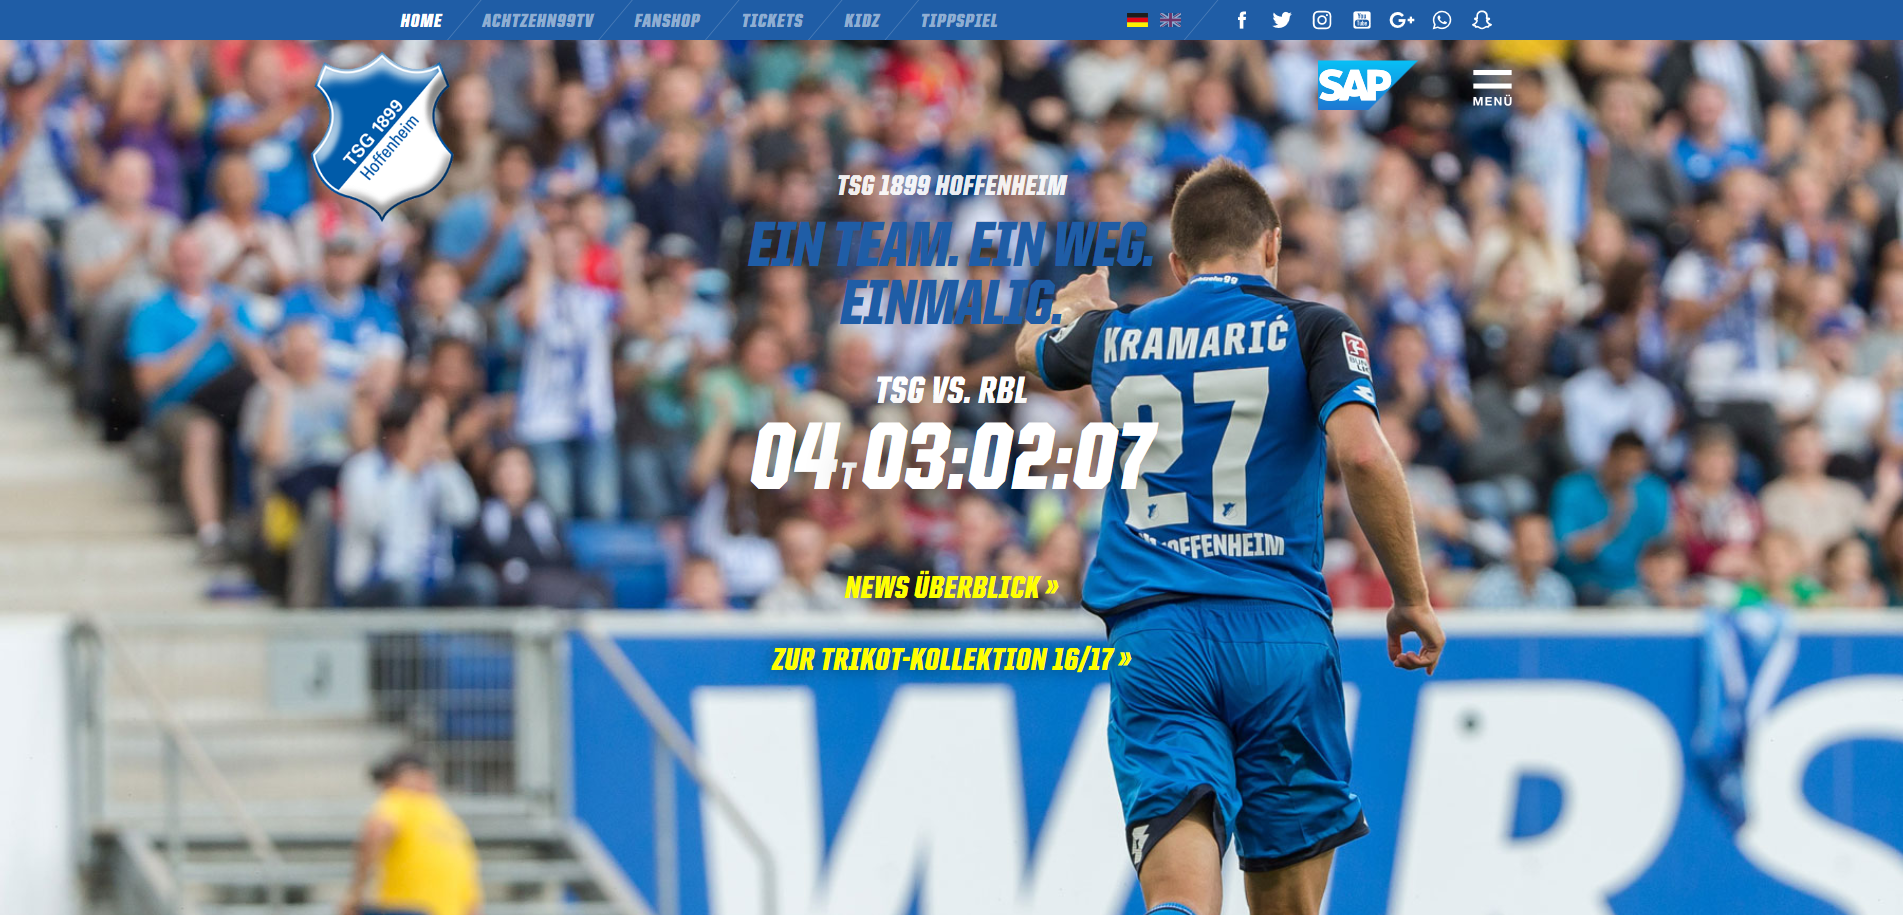 Hoffenheim_Full-Screens